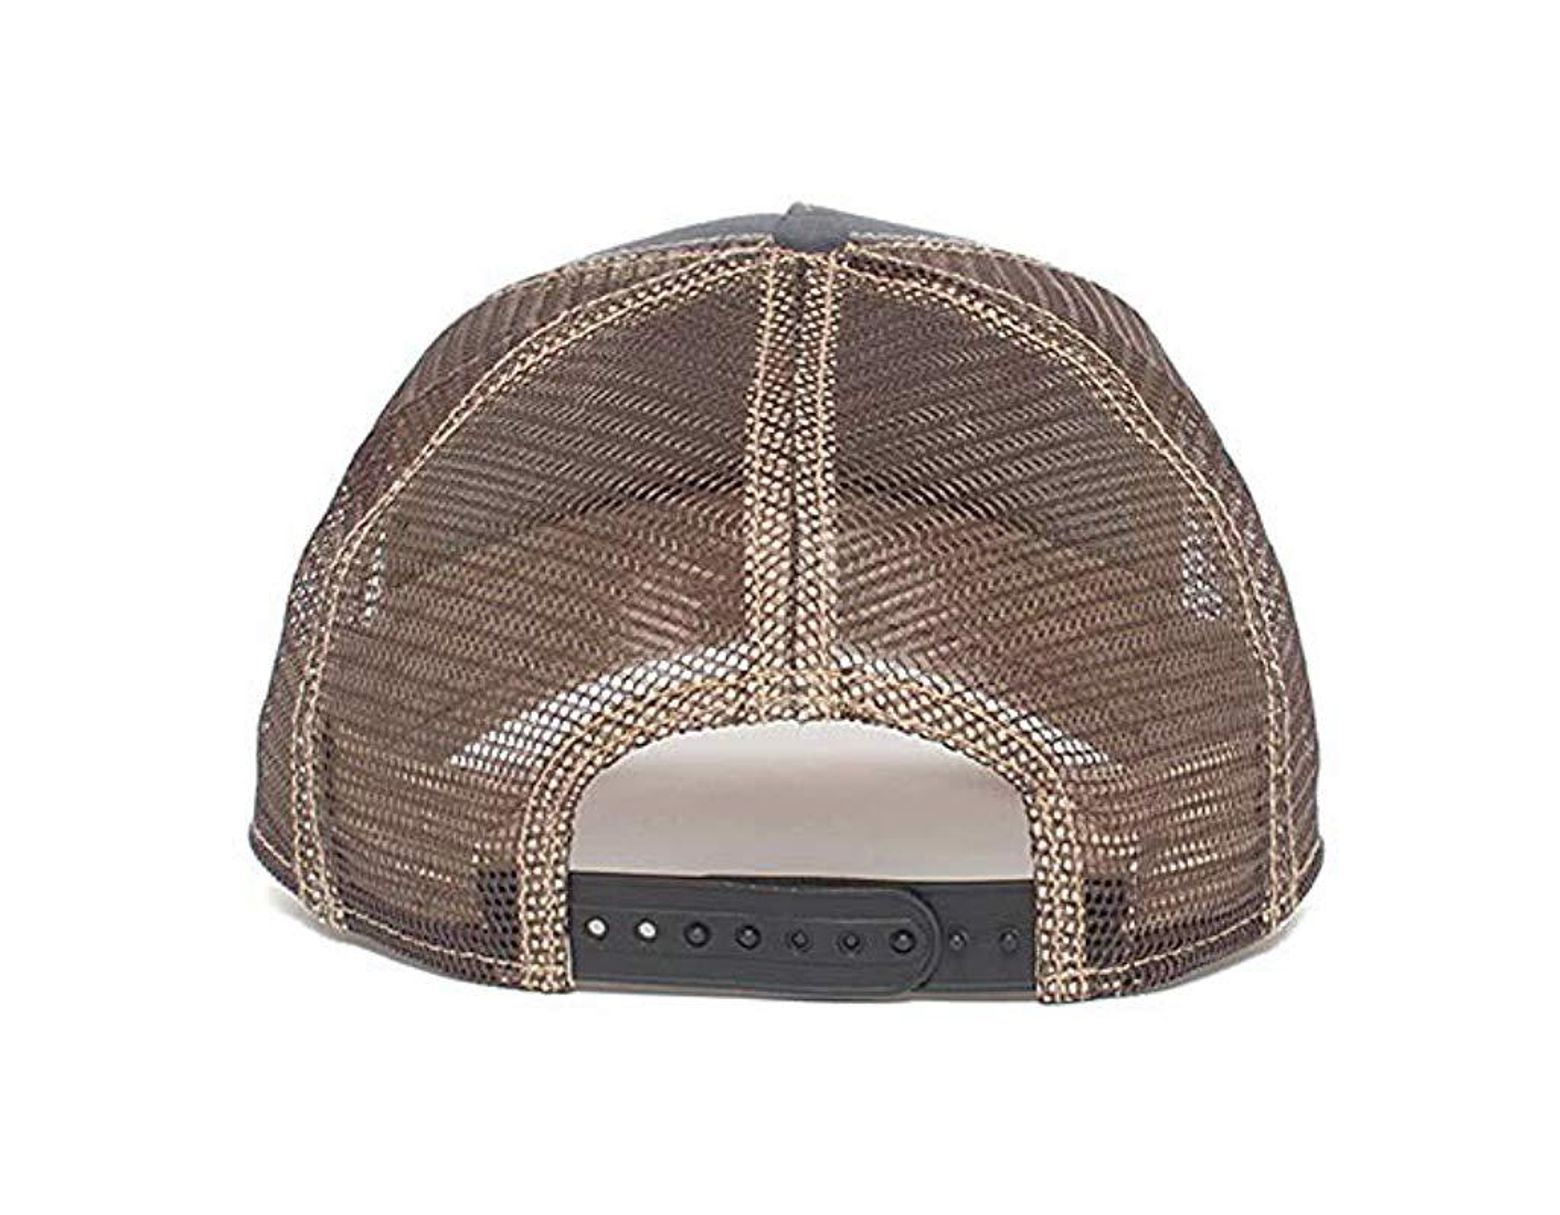 99590a327c18c Goorin Bros Animal Farm Trucker Hat in Gray for Men - Save 3% - Lyst